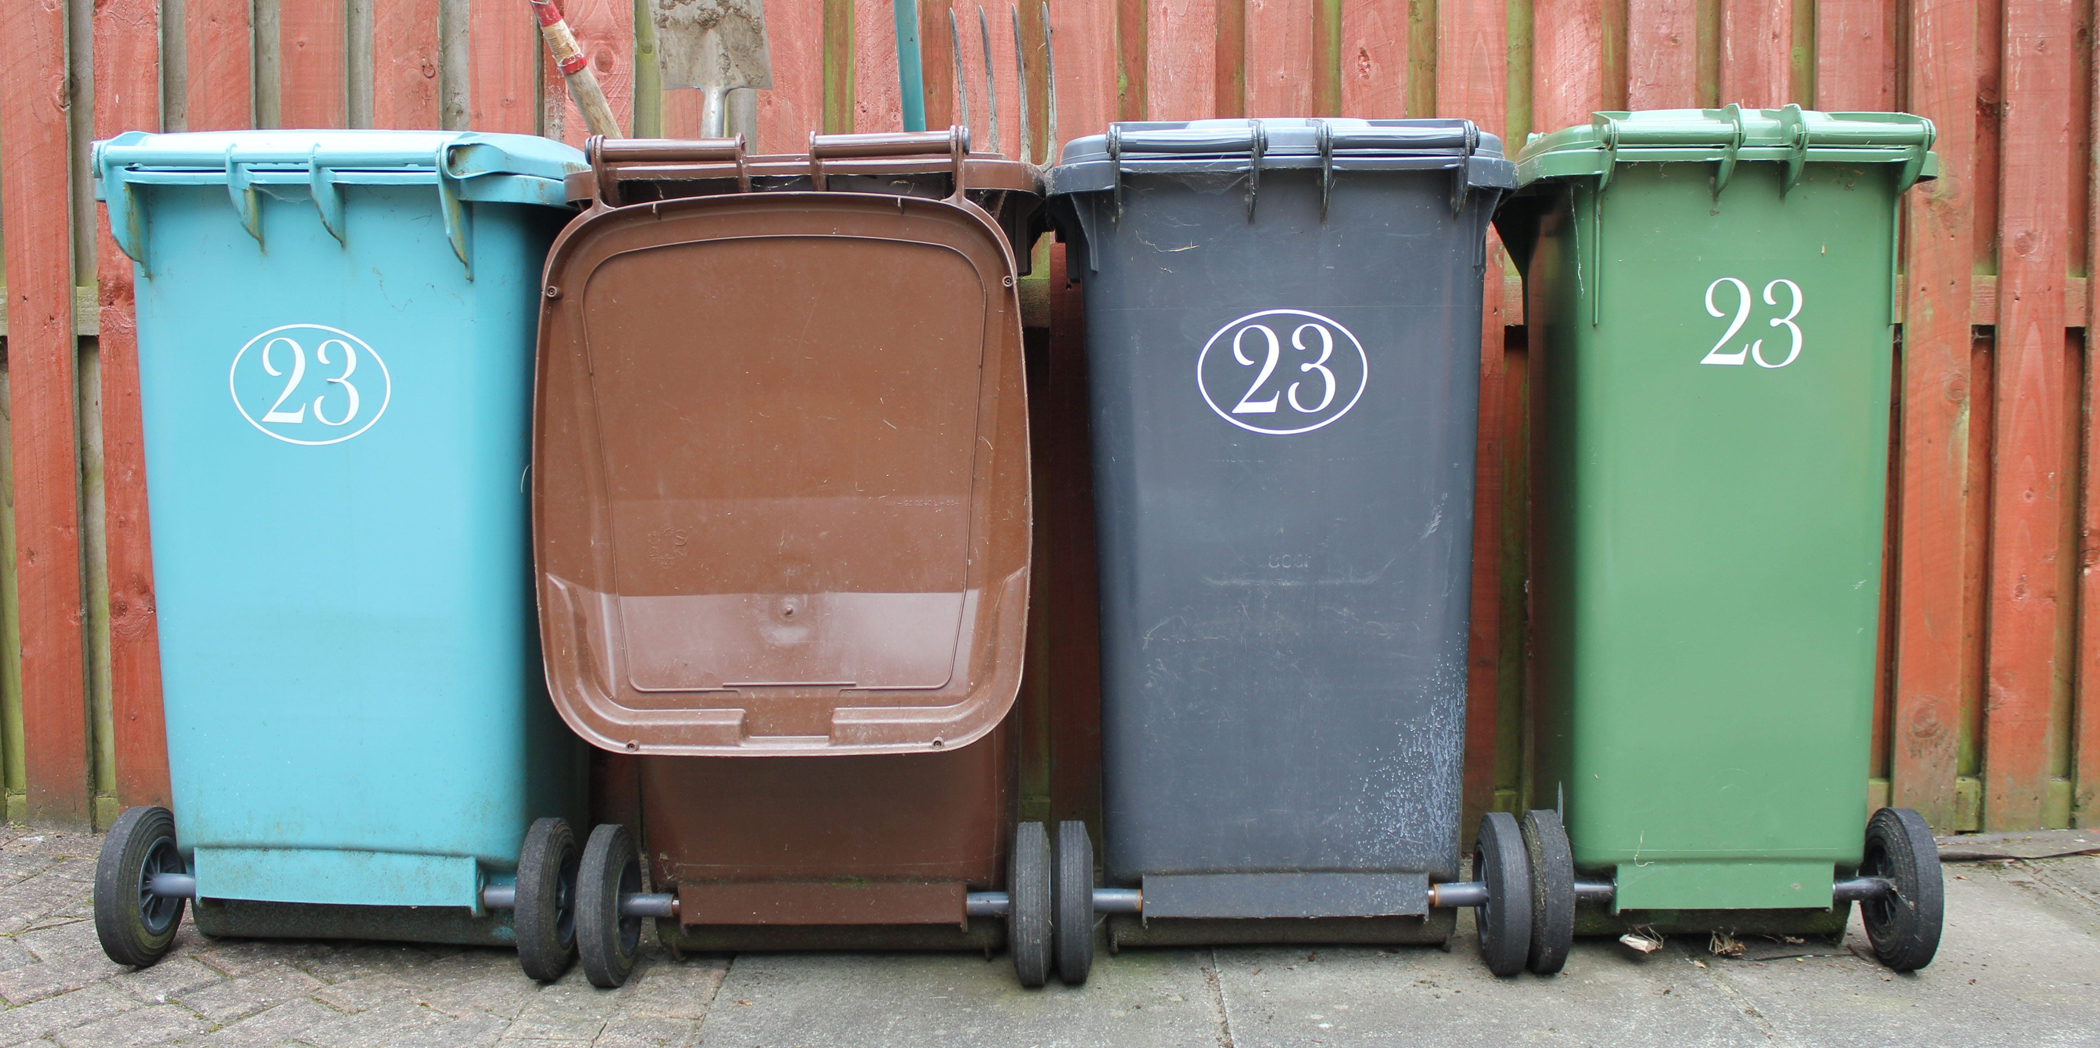 Four wheely bins